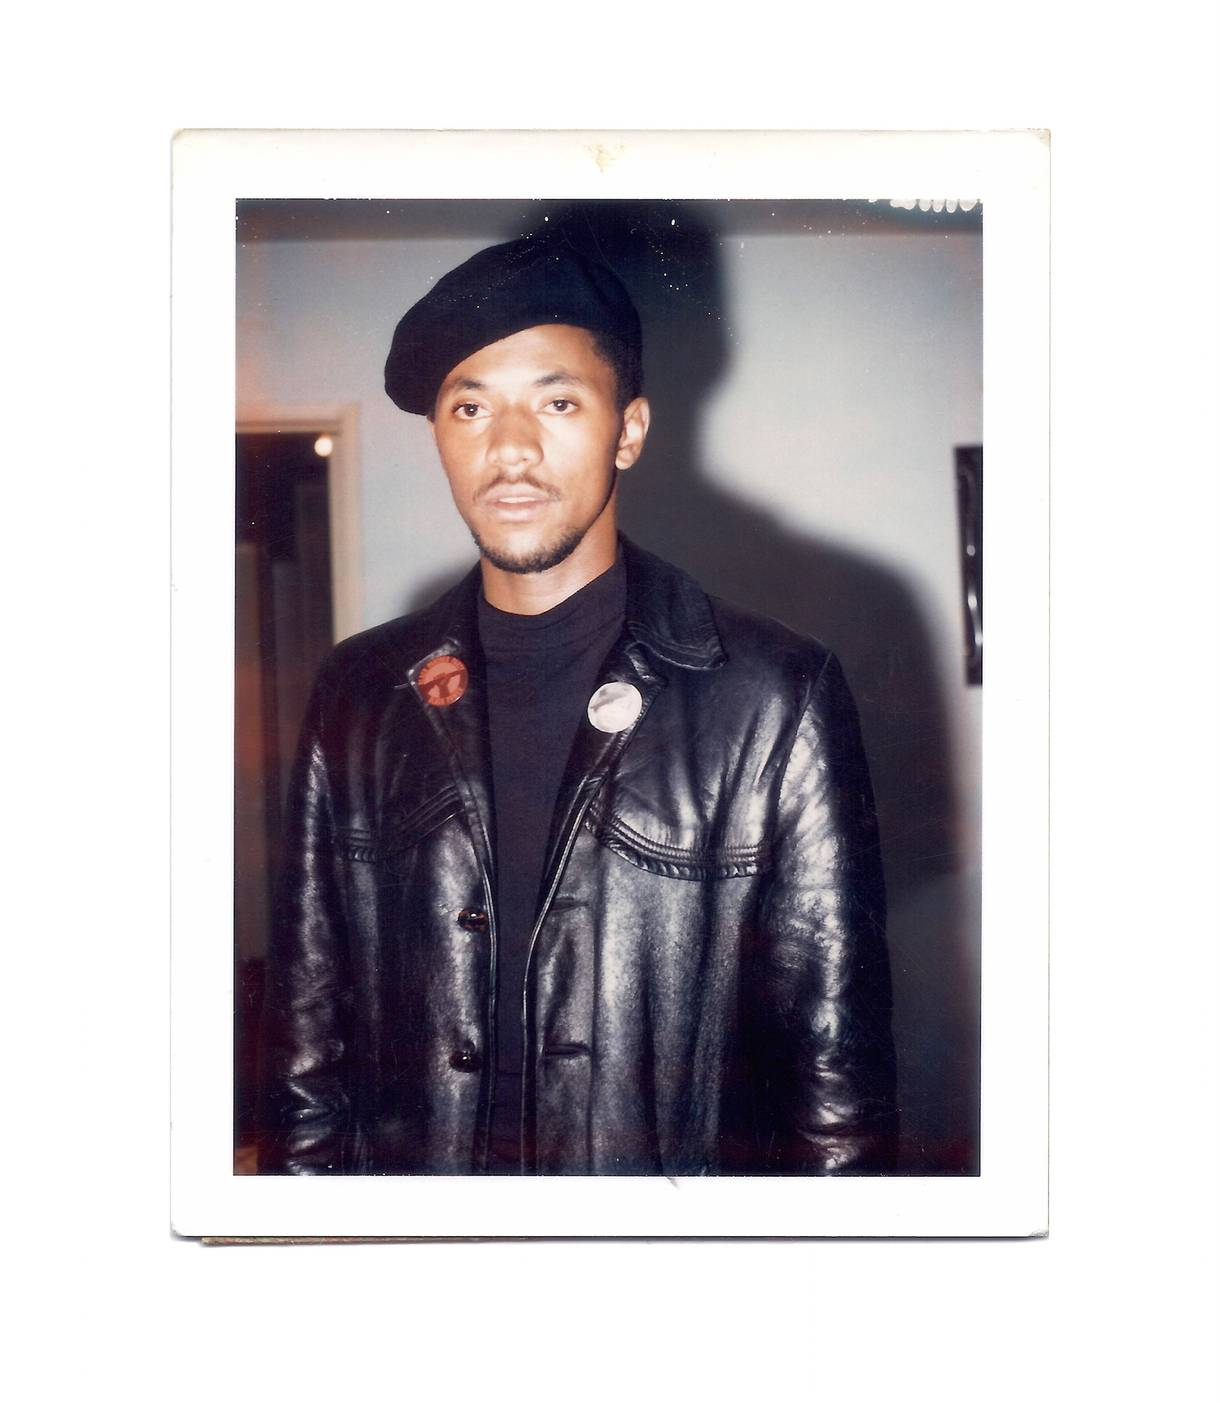 ... and founder of Black Panther Party chapter in Compton. The FBI kept a  watch on Barnette b0553b950f2